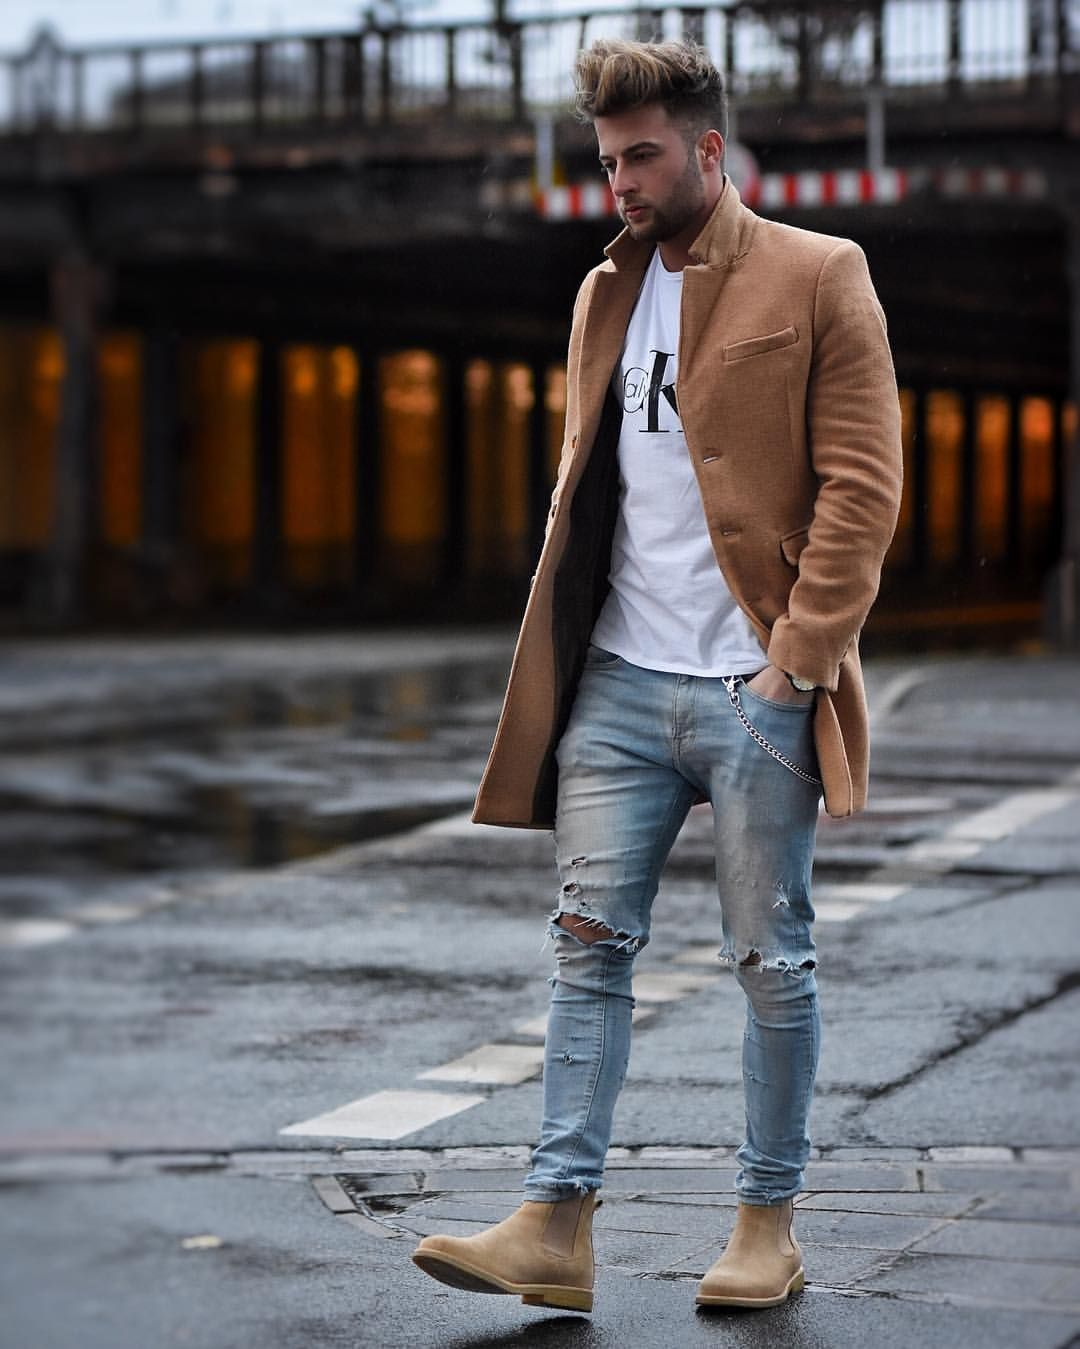 d6d58f8f3c34 Marvelous Summer Men s Fashion Ideas For Cozy Style. Men s Camel overcoat  with ripped jeans. Such a great look this Autumn Winter